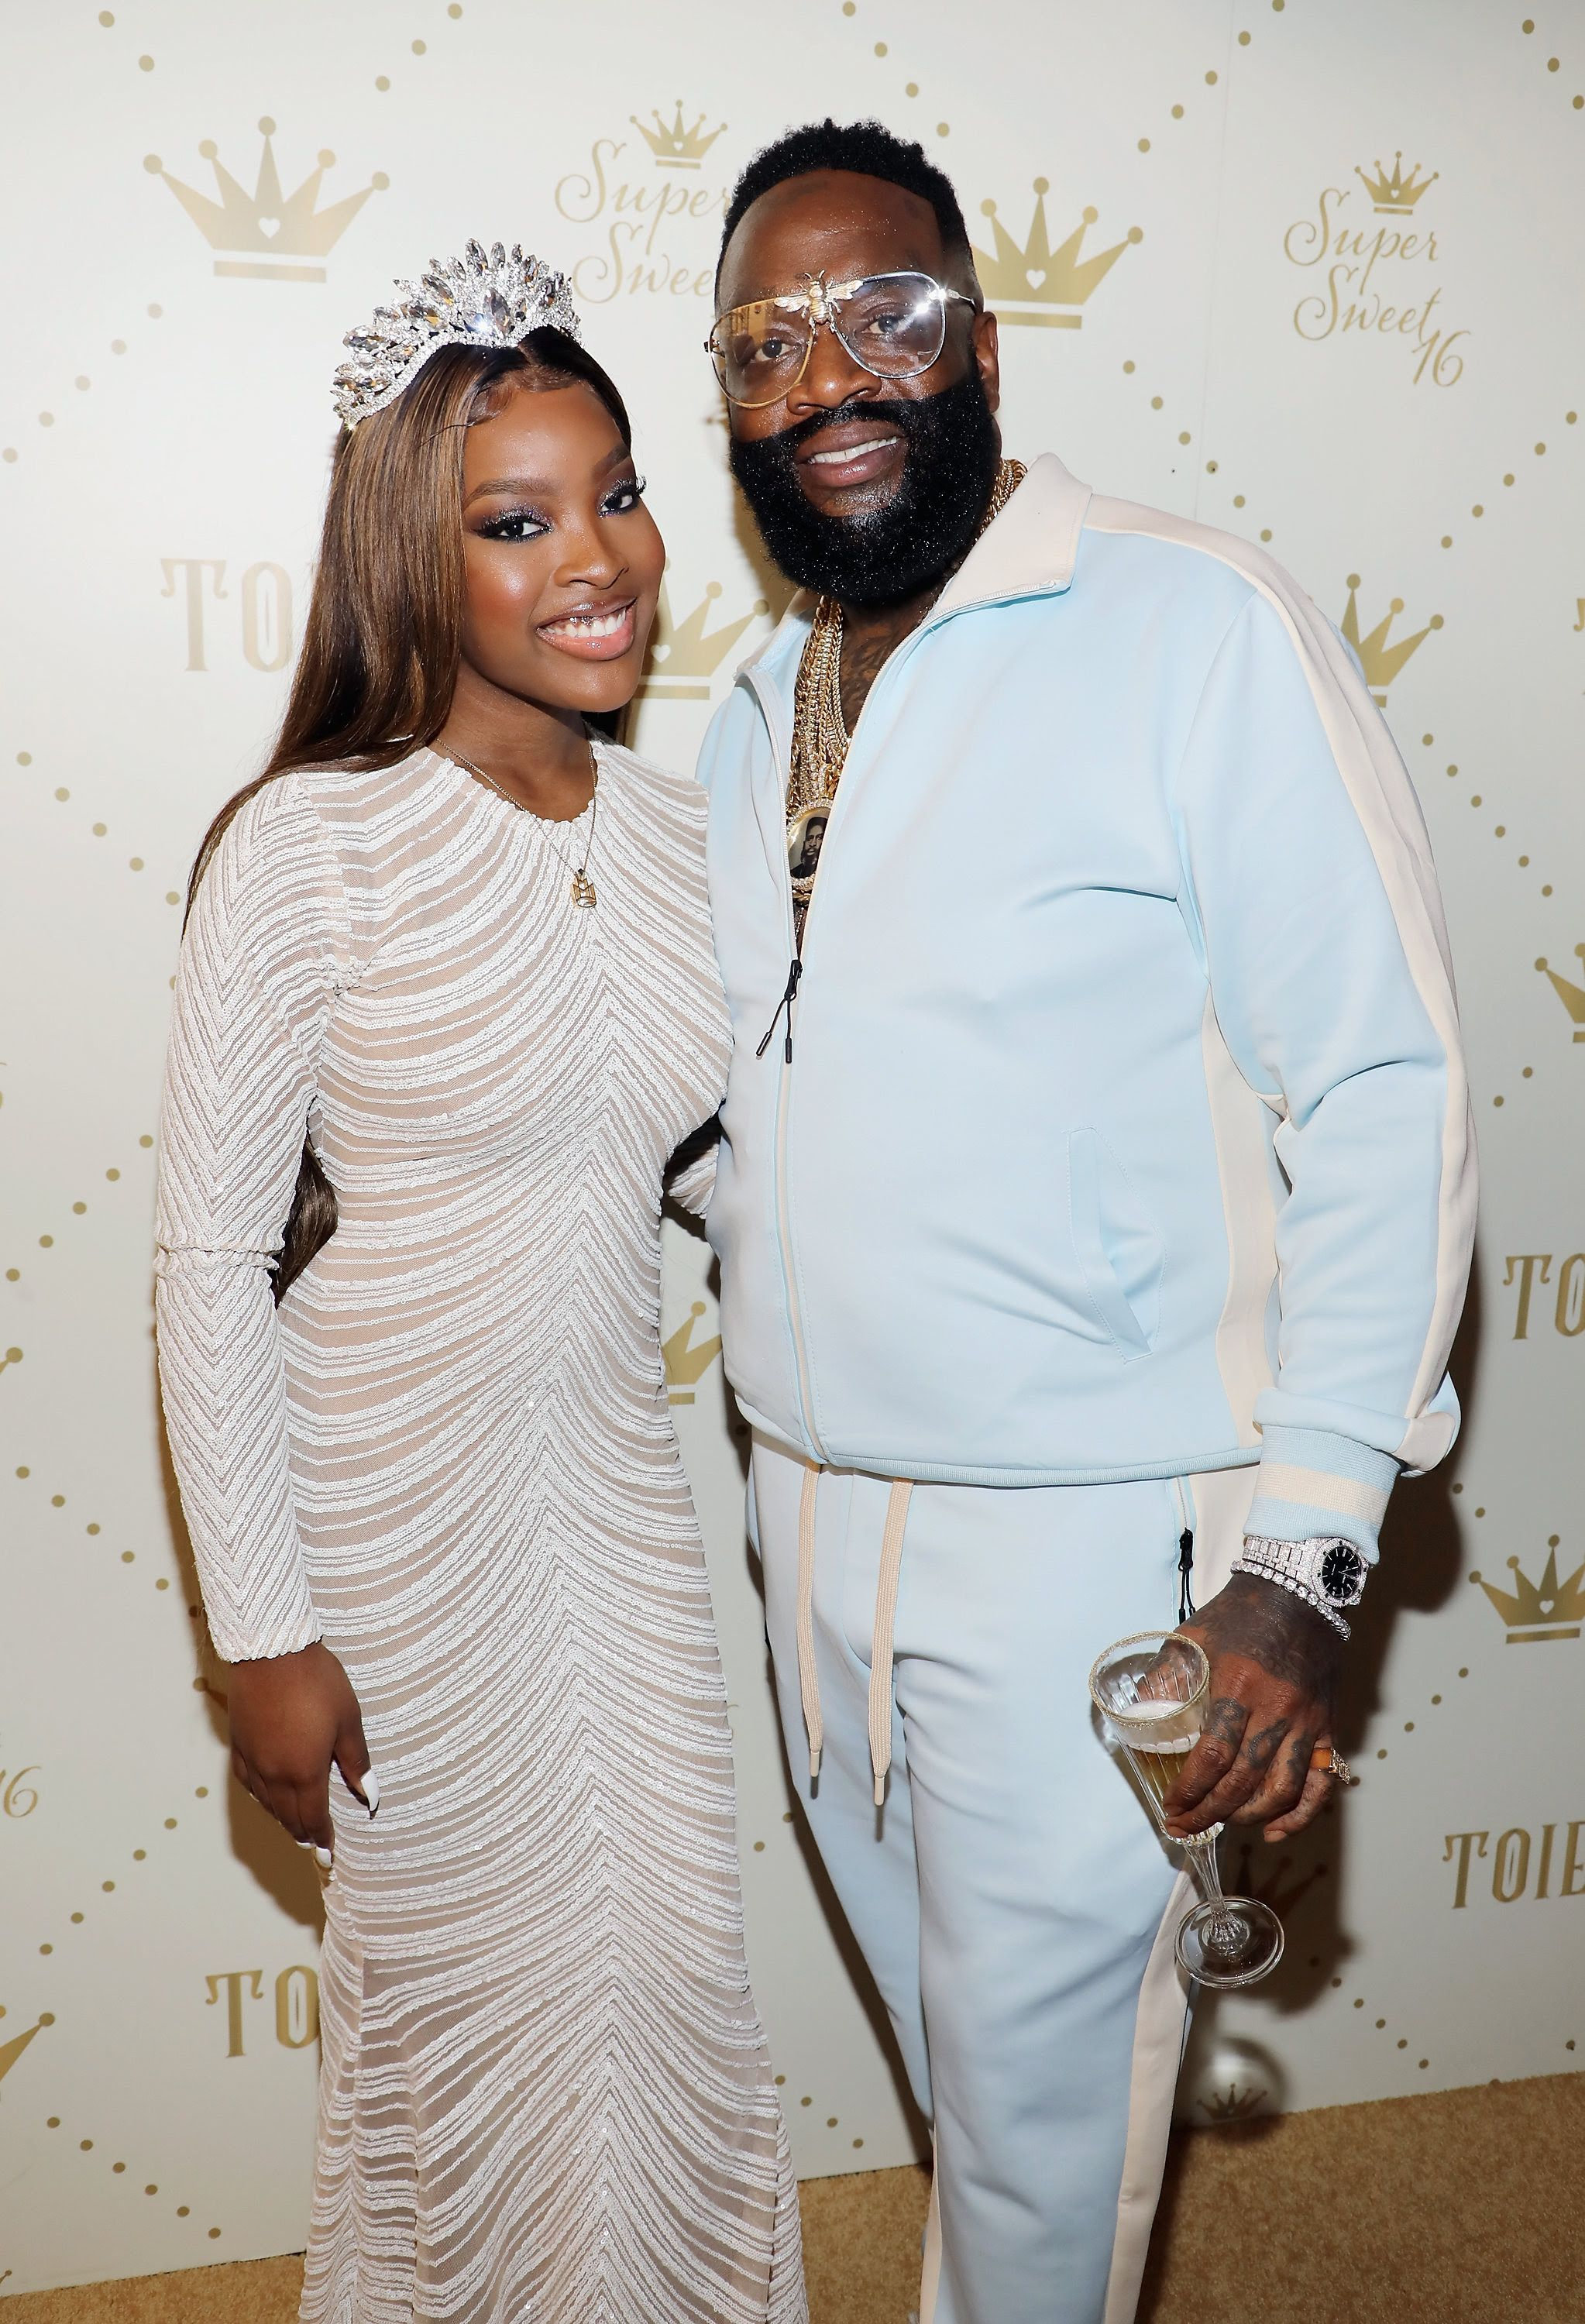 RICK ROSS A-BOOGIE WIT DA HOODIE KASH DOLL ATTEND TOIE